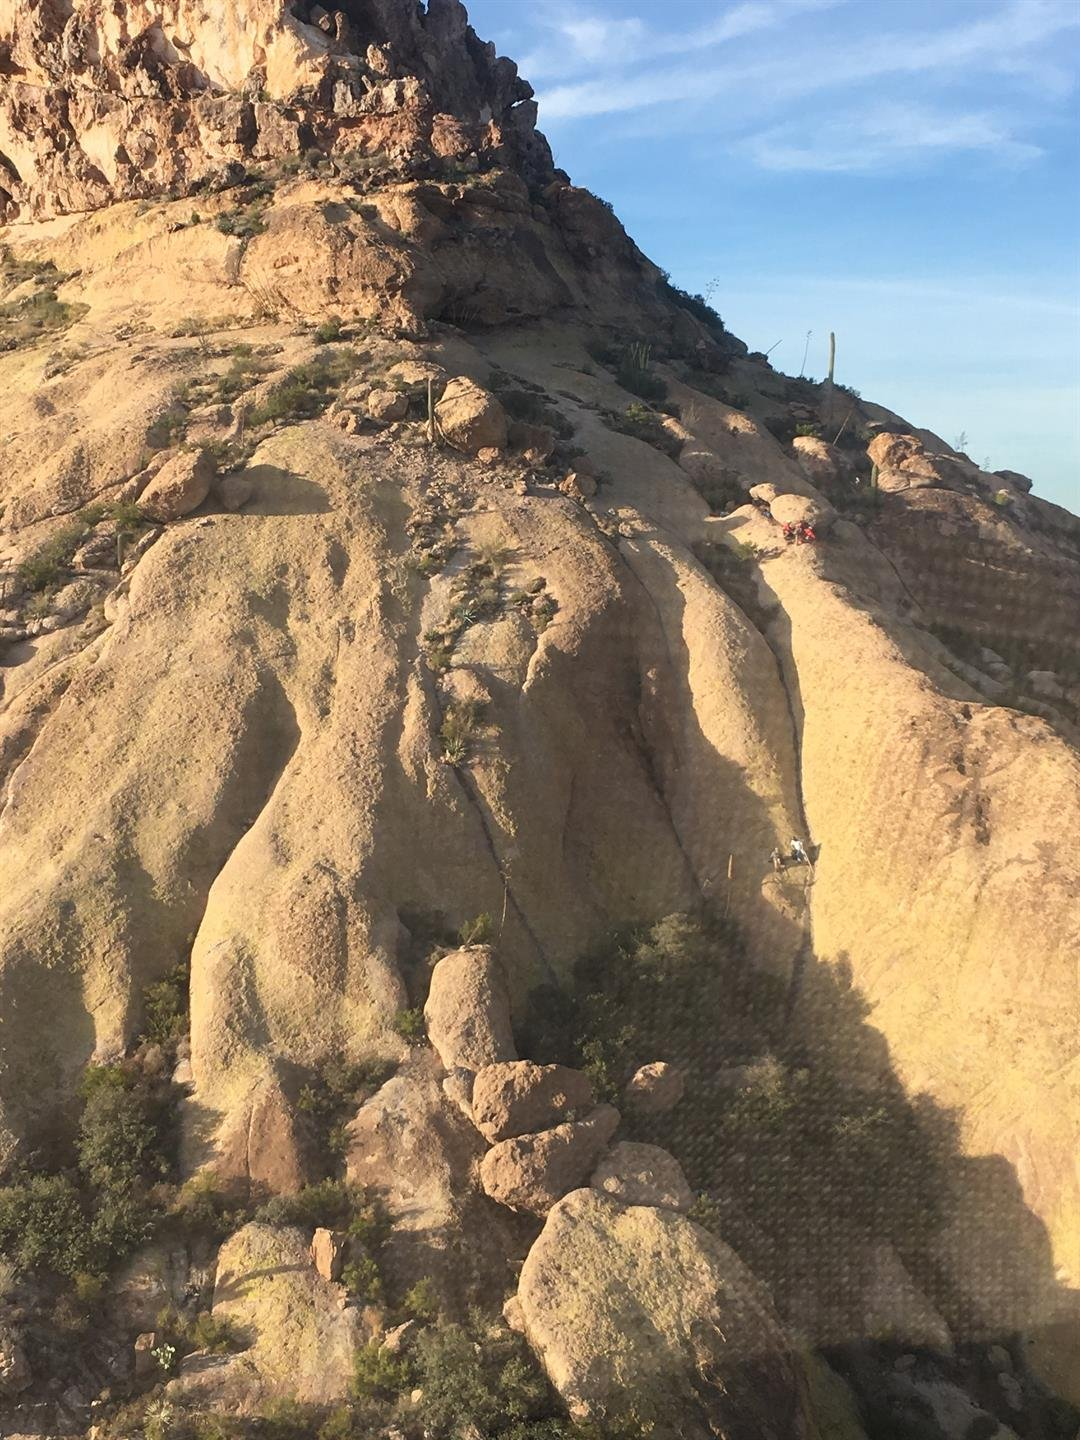 Four Pinal County Sheriff's Office Search and Rescue volunteers helped the hikers to a less steep area where the helicopter could pick them up. (Source: Arizona Department of Public Safety)